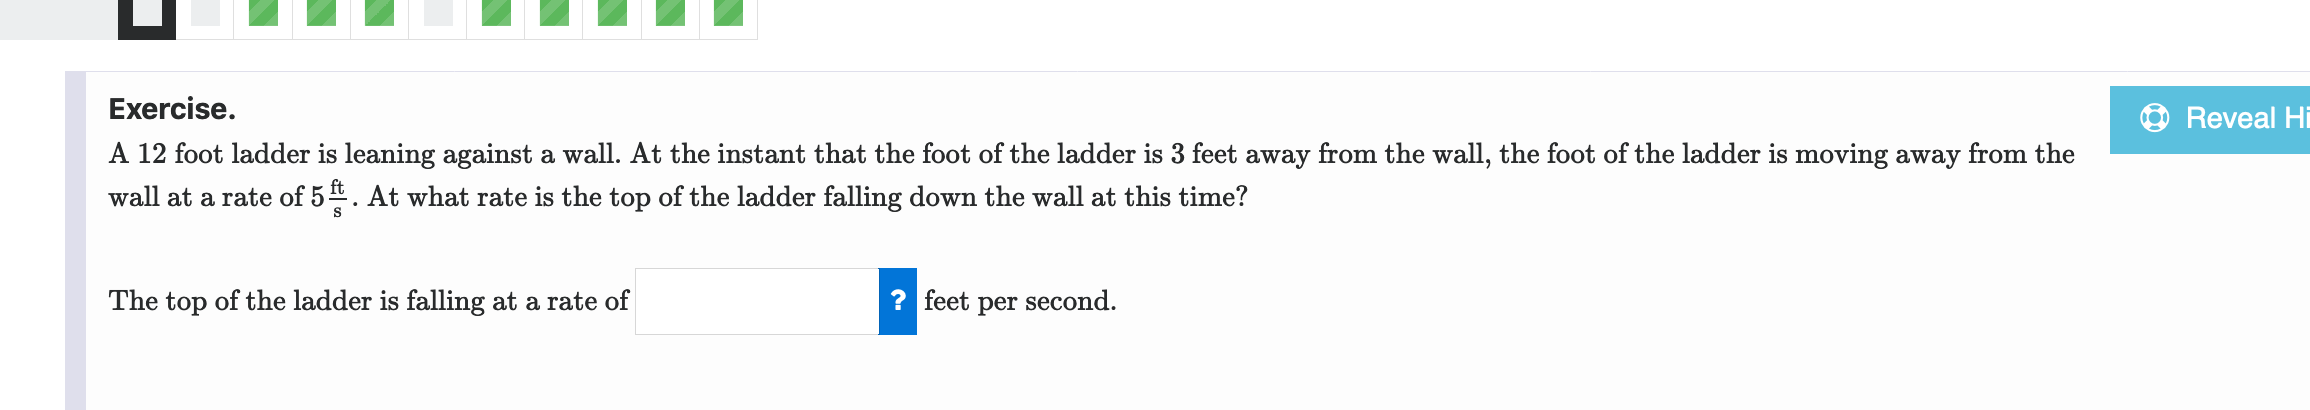 © Reveal Hi Exercise. A 12 foot ladder is leaning against a wall. At the instant that the foot of the ladder is 3 feet away f